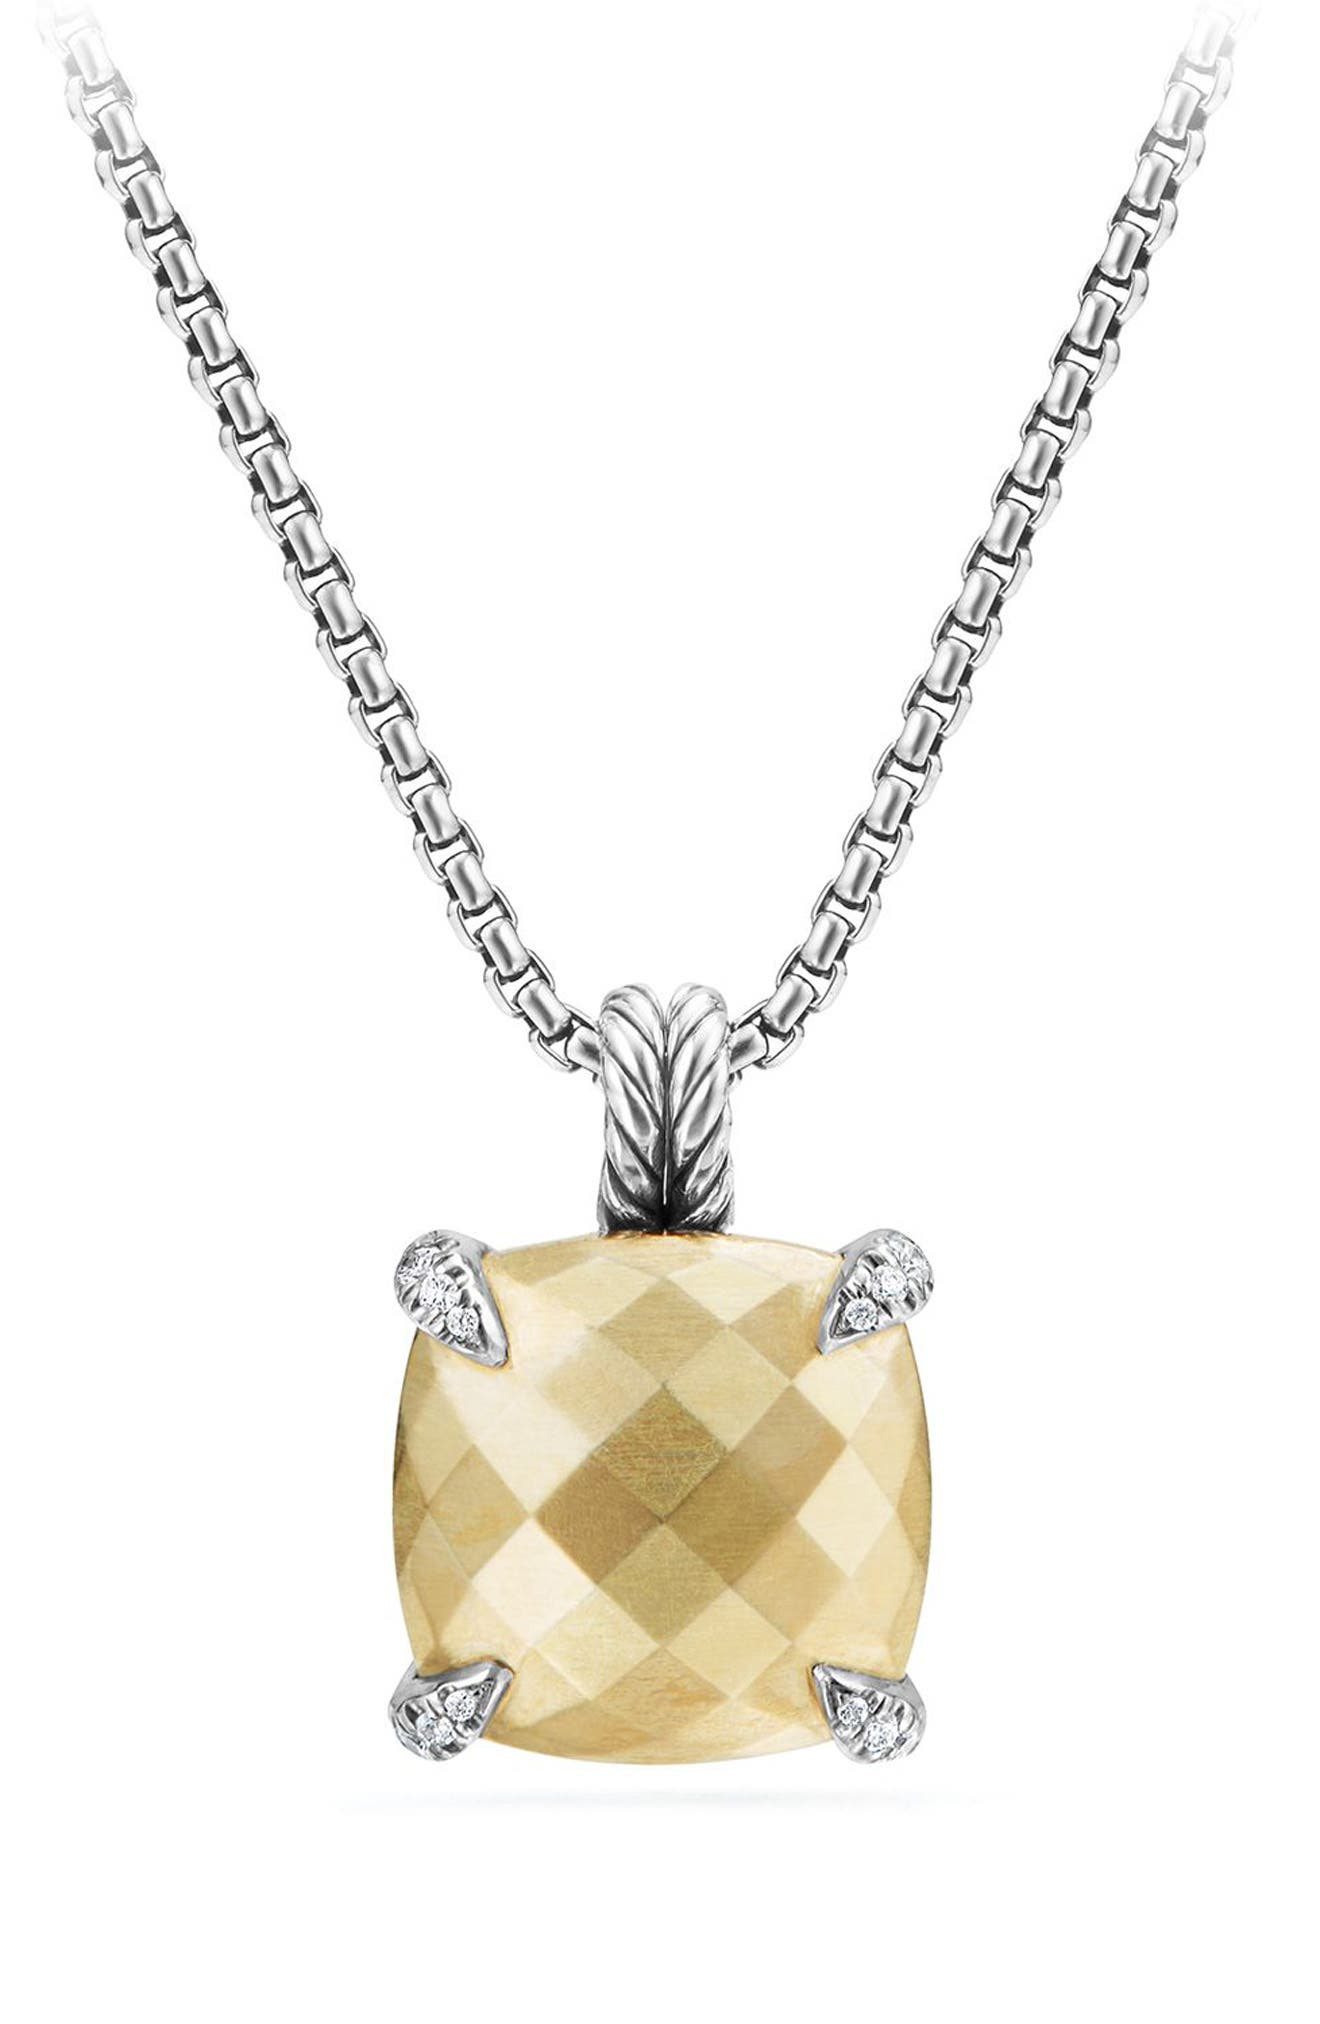 Main Image - David Yurman Châtelaine Pendant Necklace with Diamonds